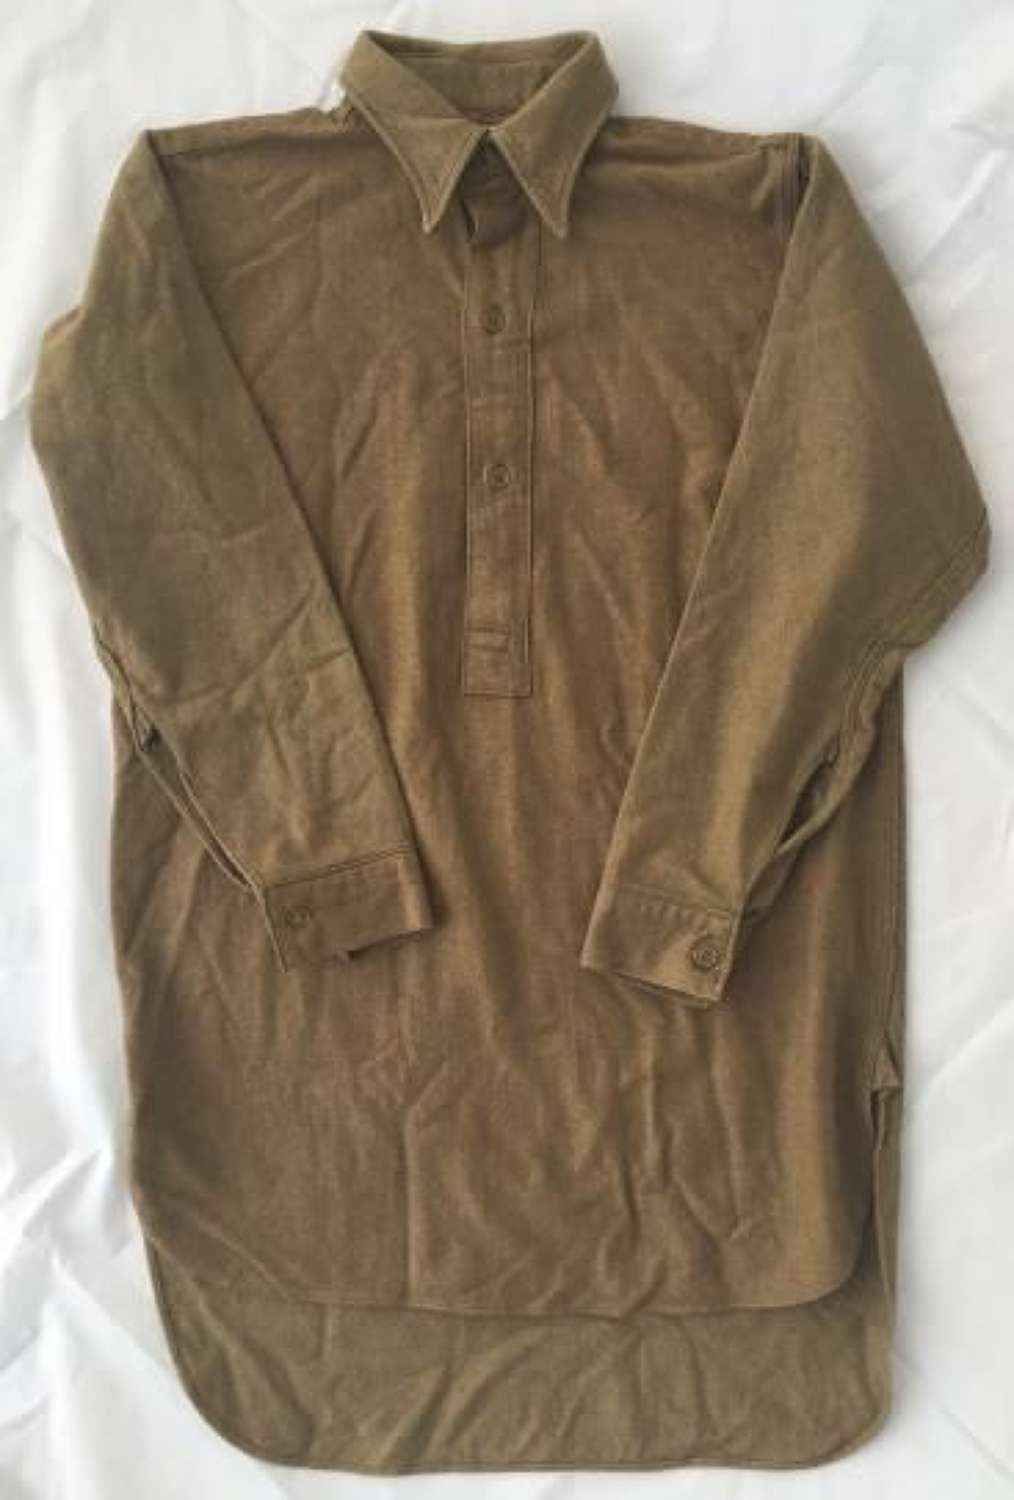 1945 Dated British Army OR collared shirt - Size 4